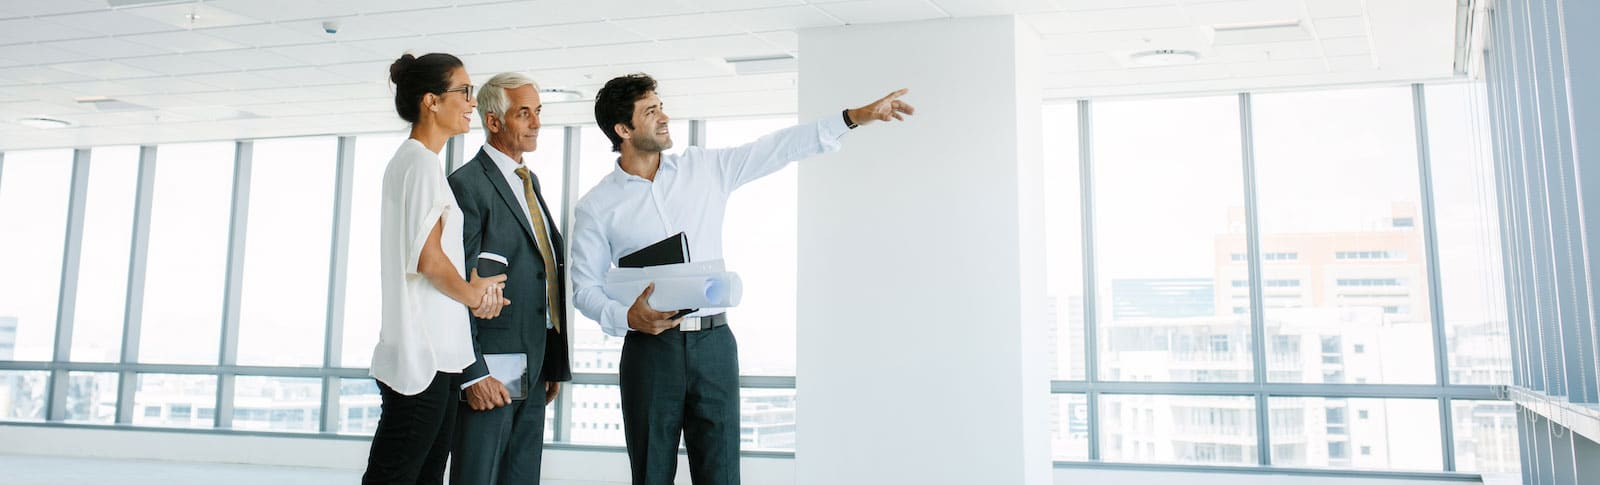 advisors pointing at something out window